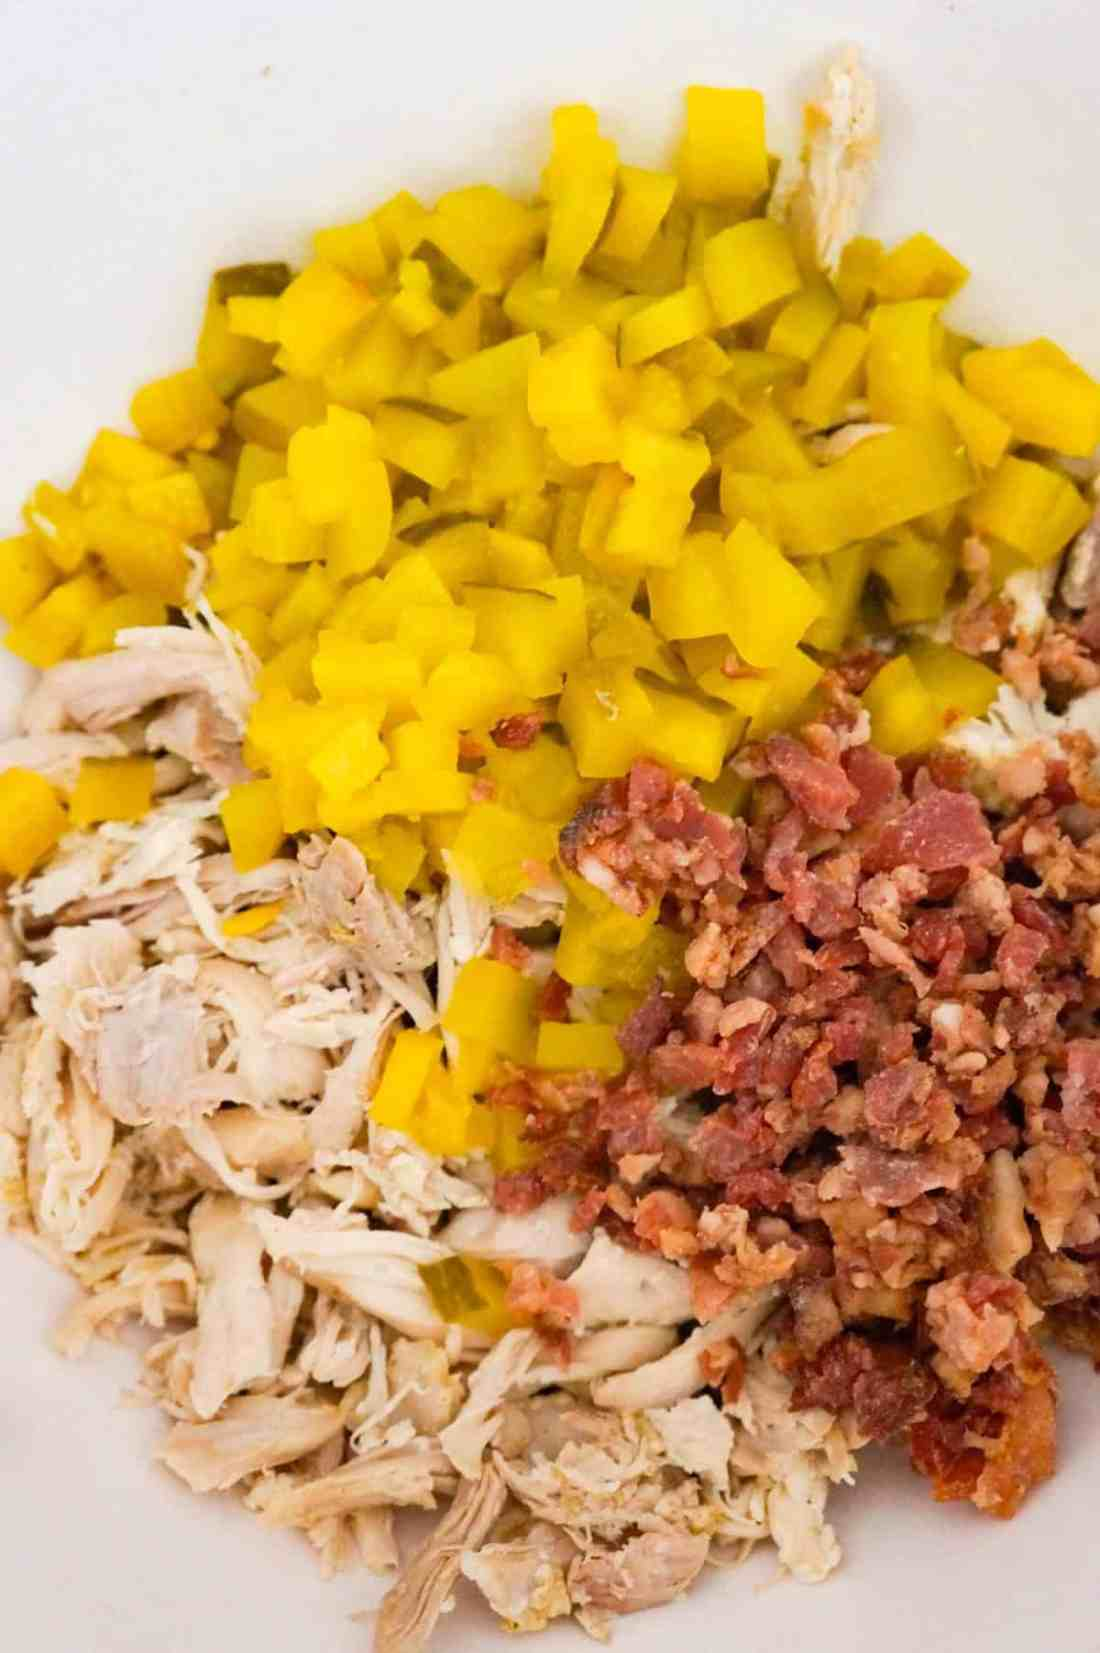 shredded chicken, diced dill pickles and crumbled bacon in a mixing bowl